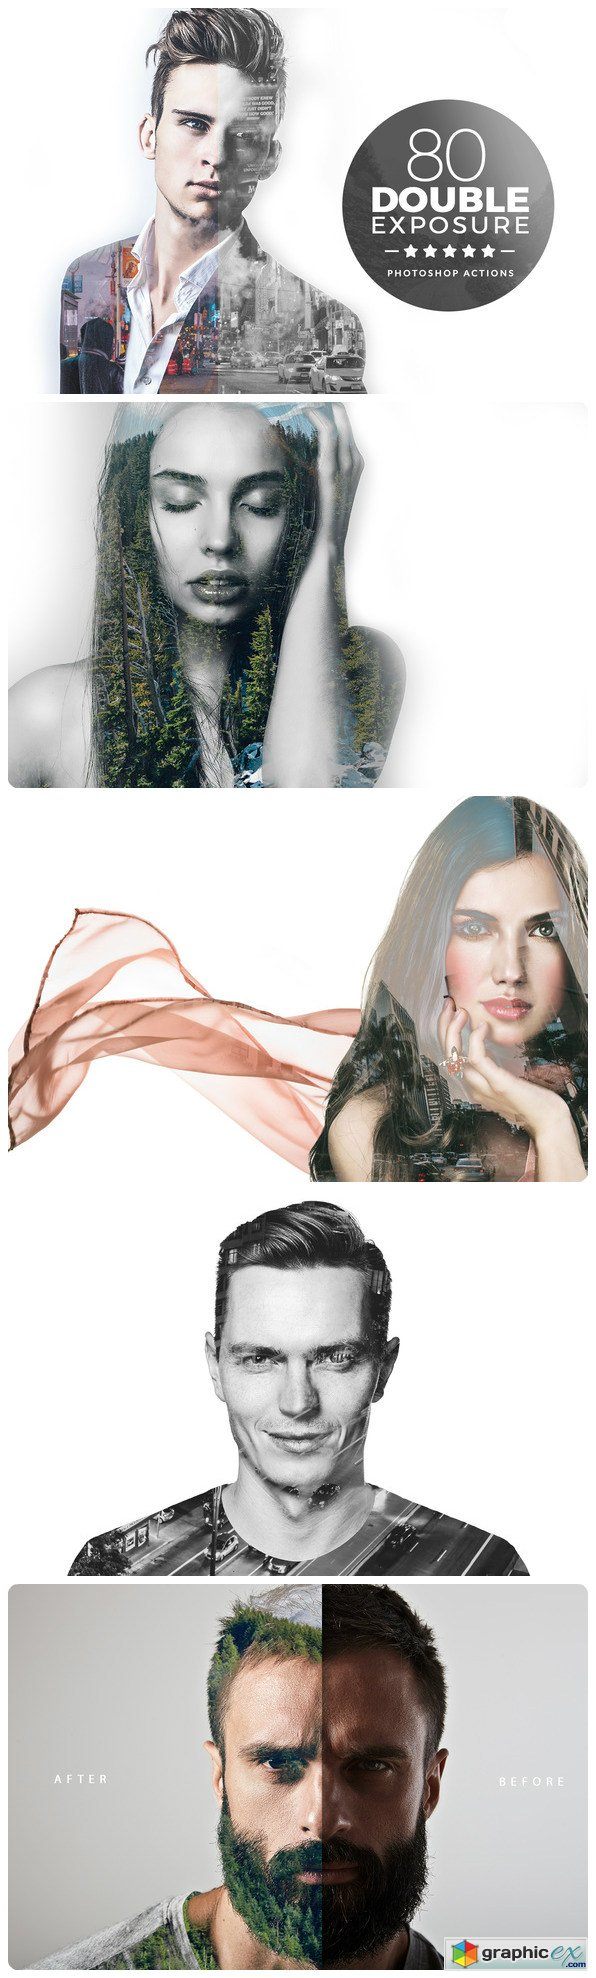 Double Exposure photoshop Actions 629970